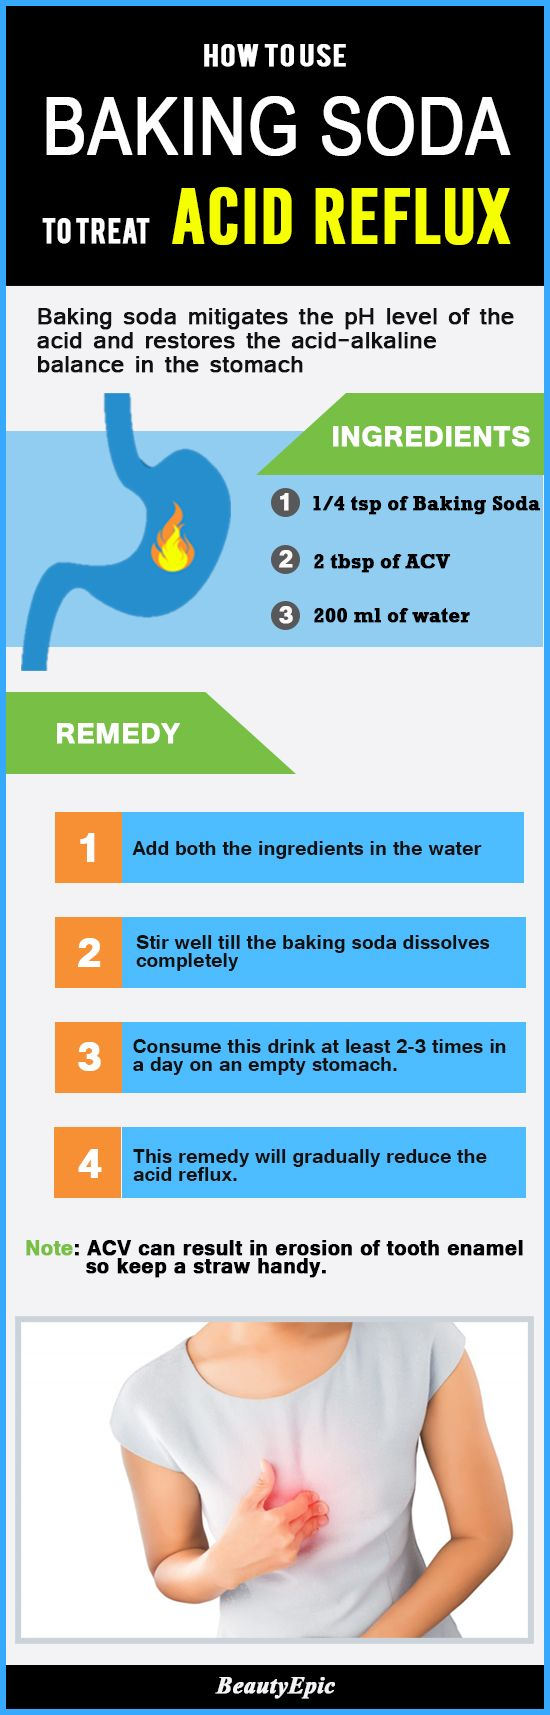 How to Use Baking Soda to Treat Acid Reflux